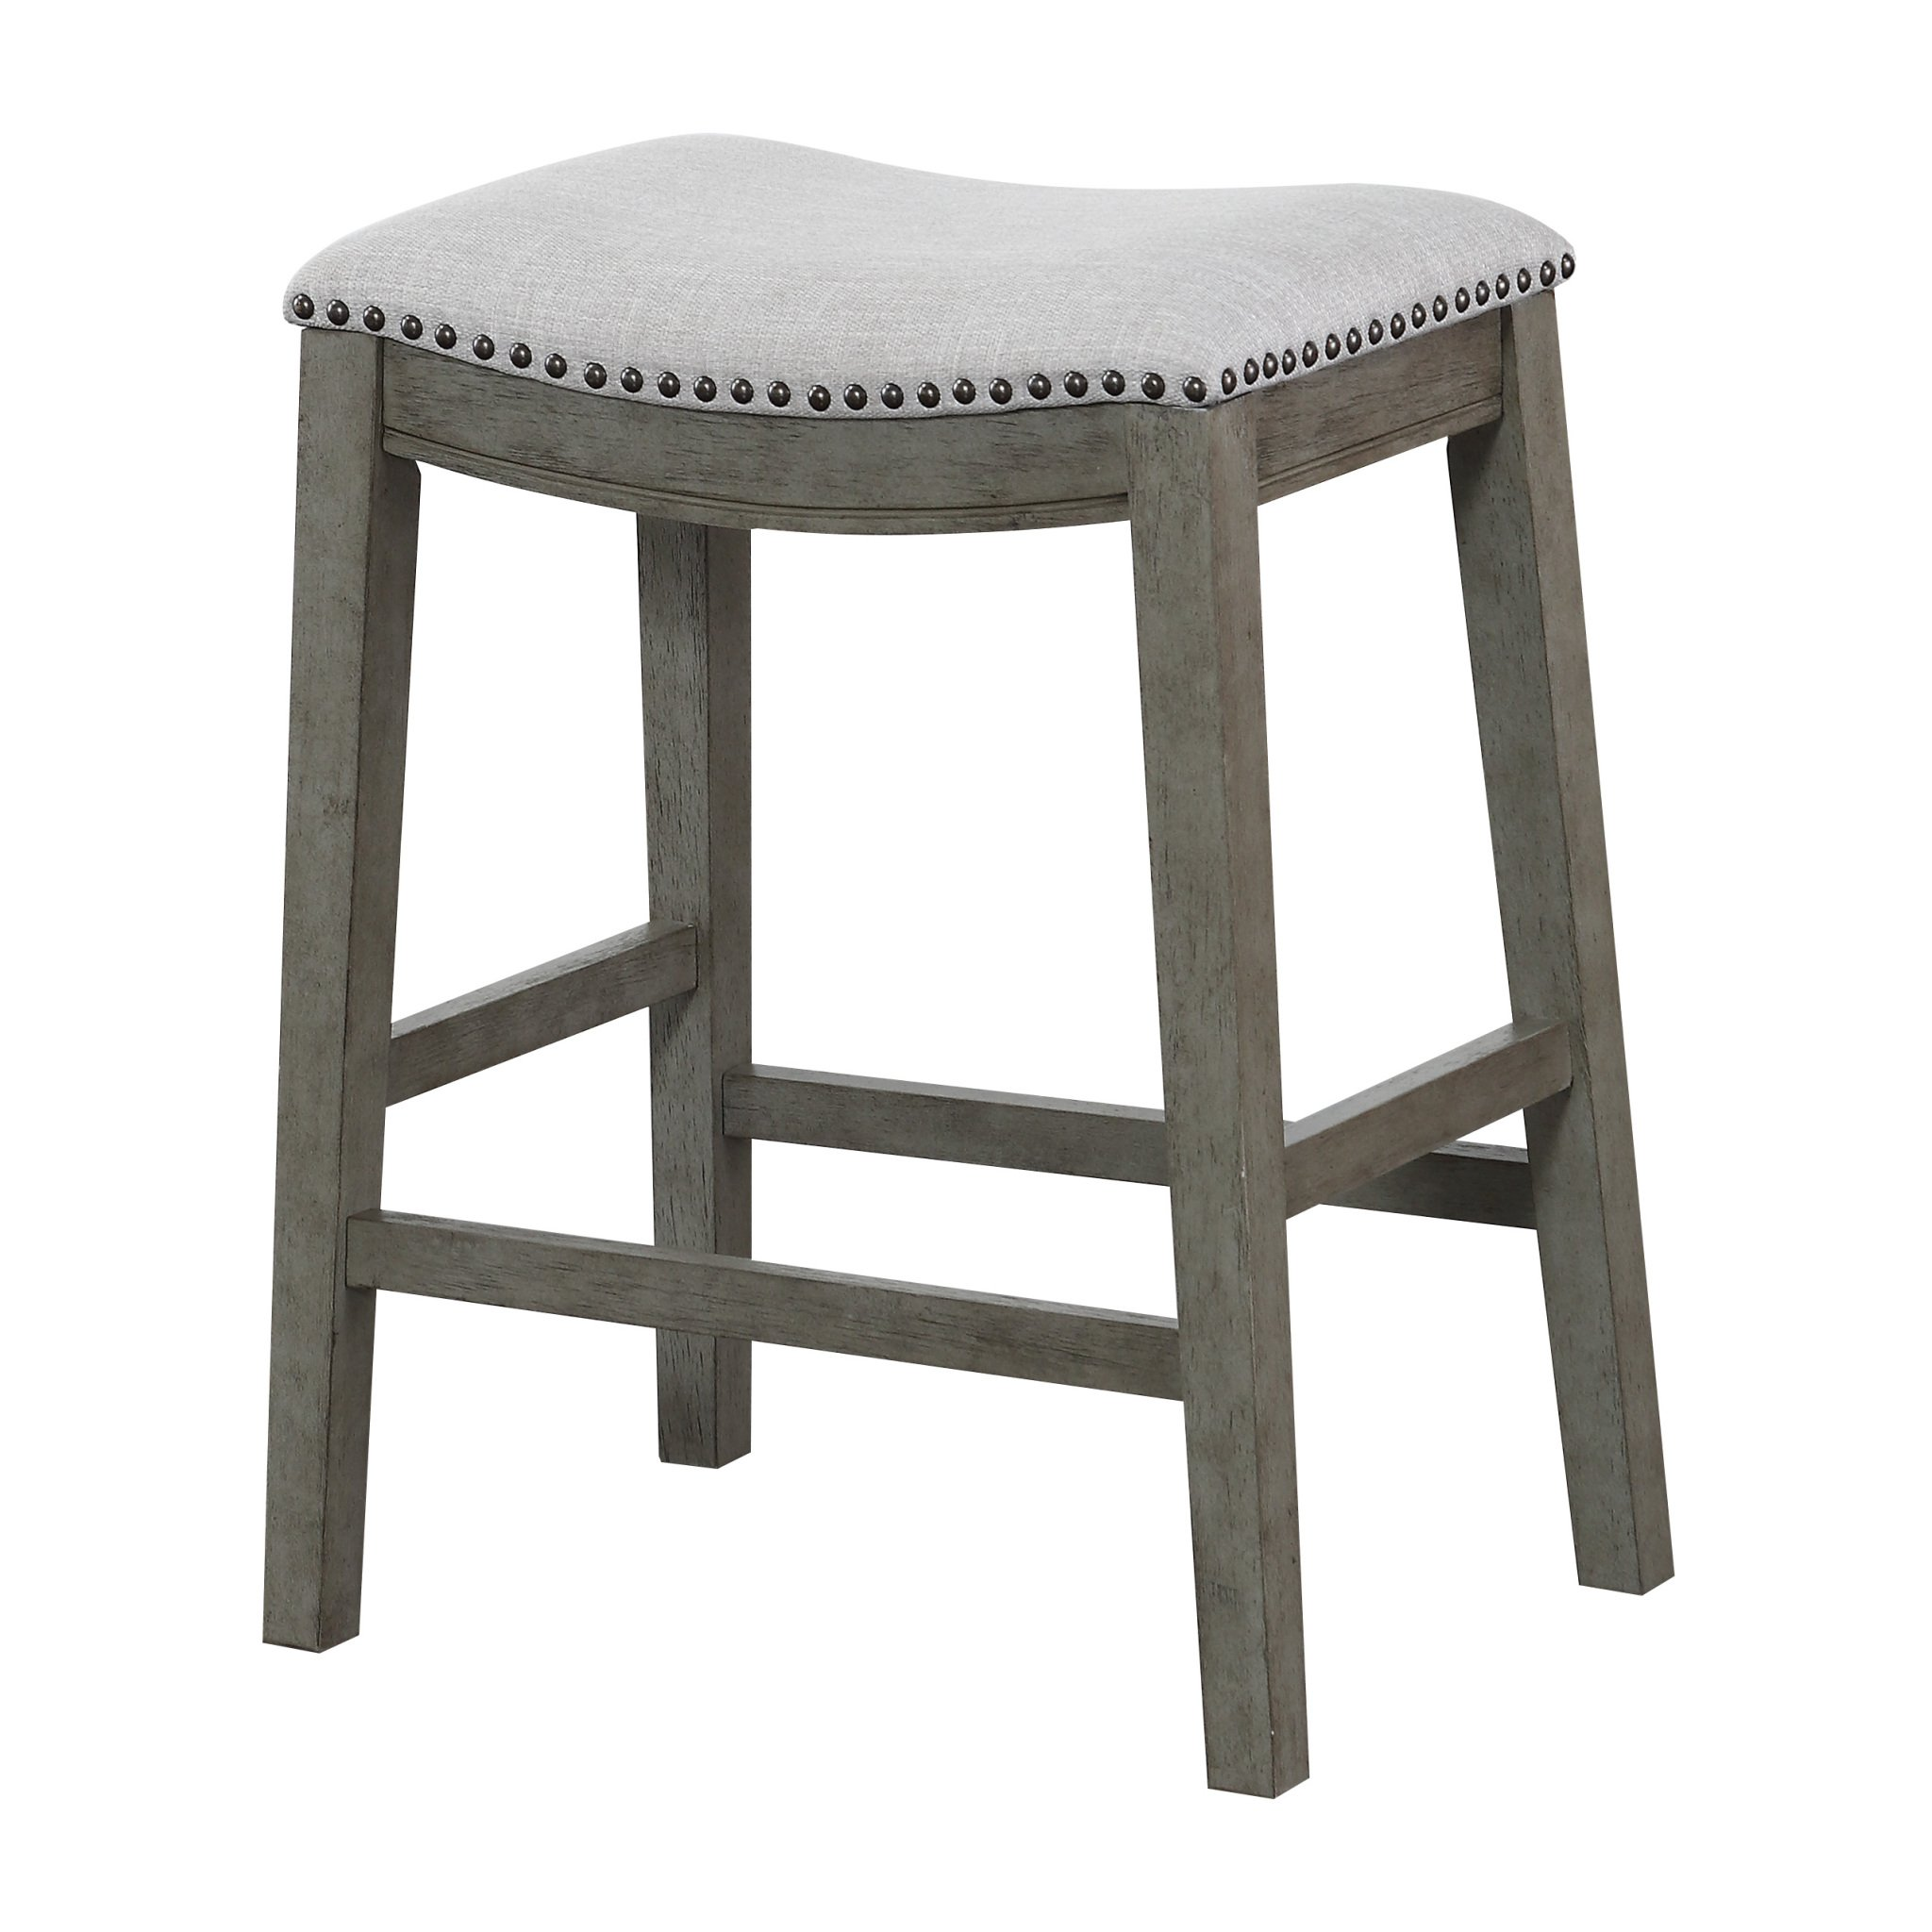 Office Star Saddle Stool with Antique Grey Base, 24-Inch, Grey Fabric by OSP Designs